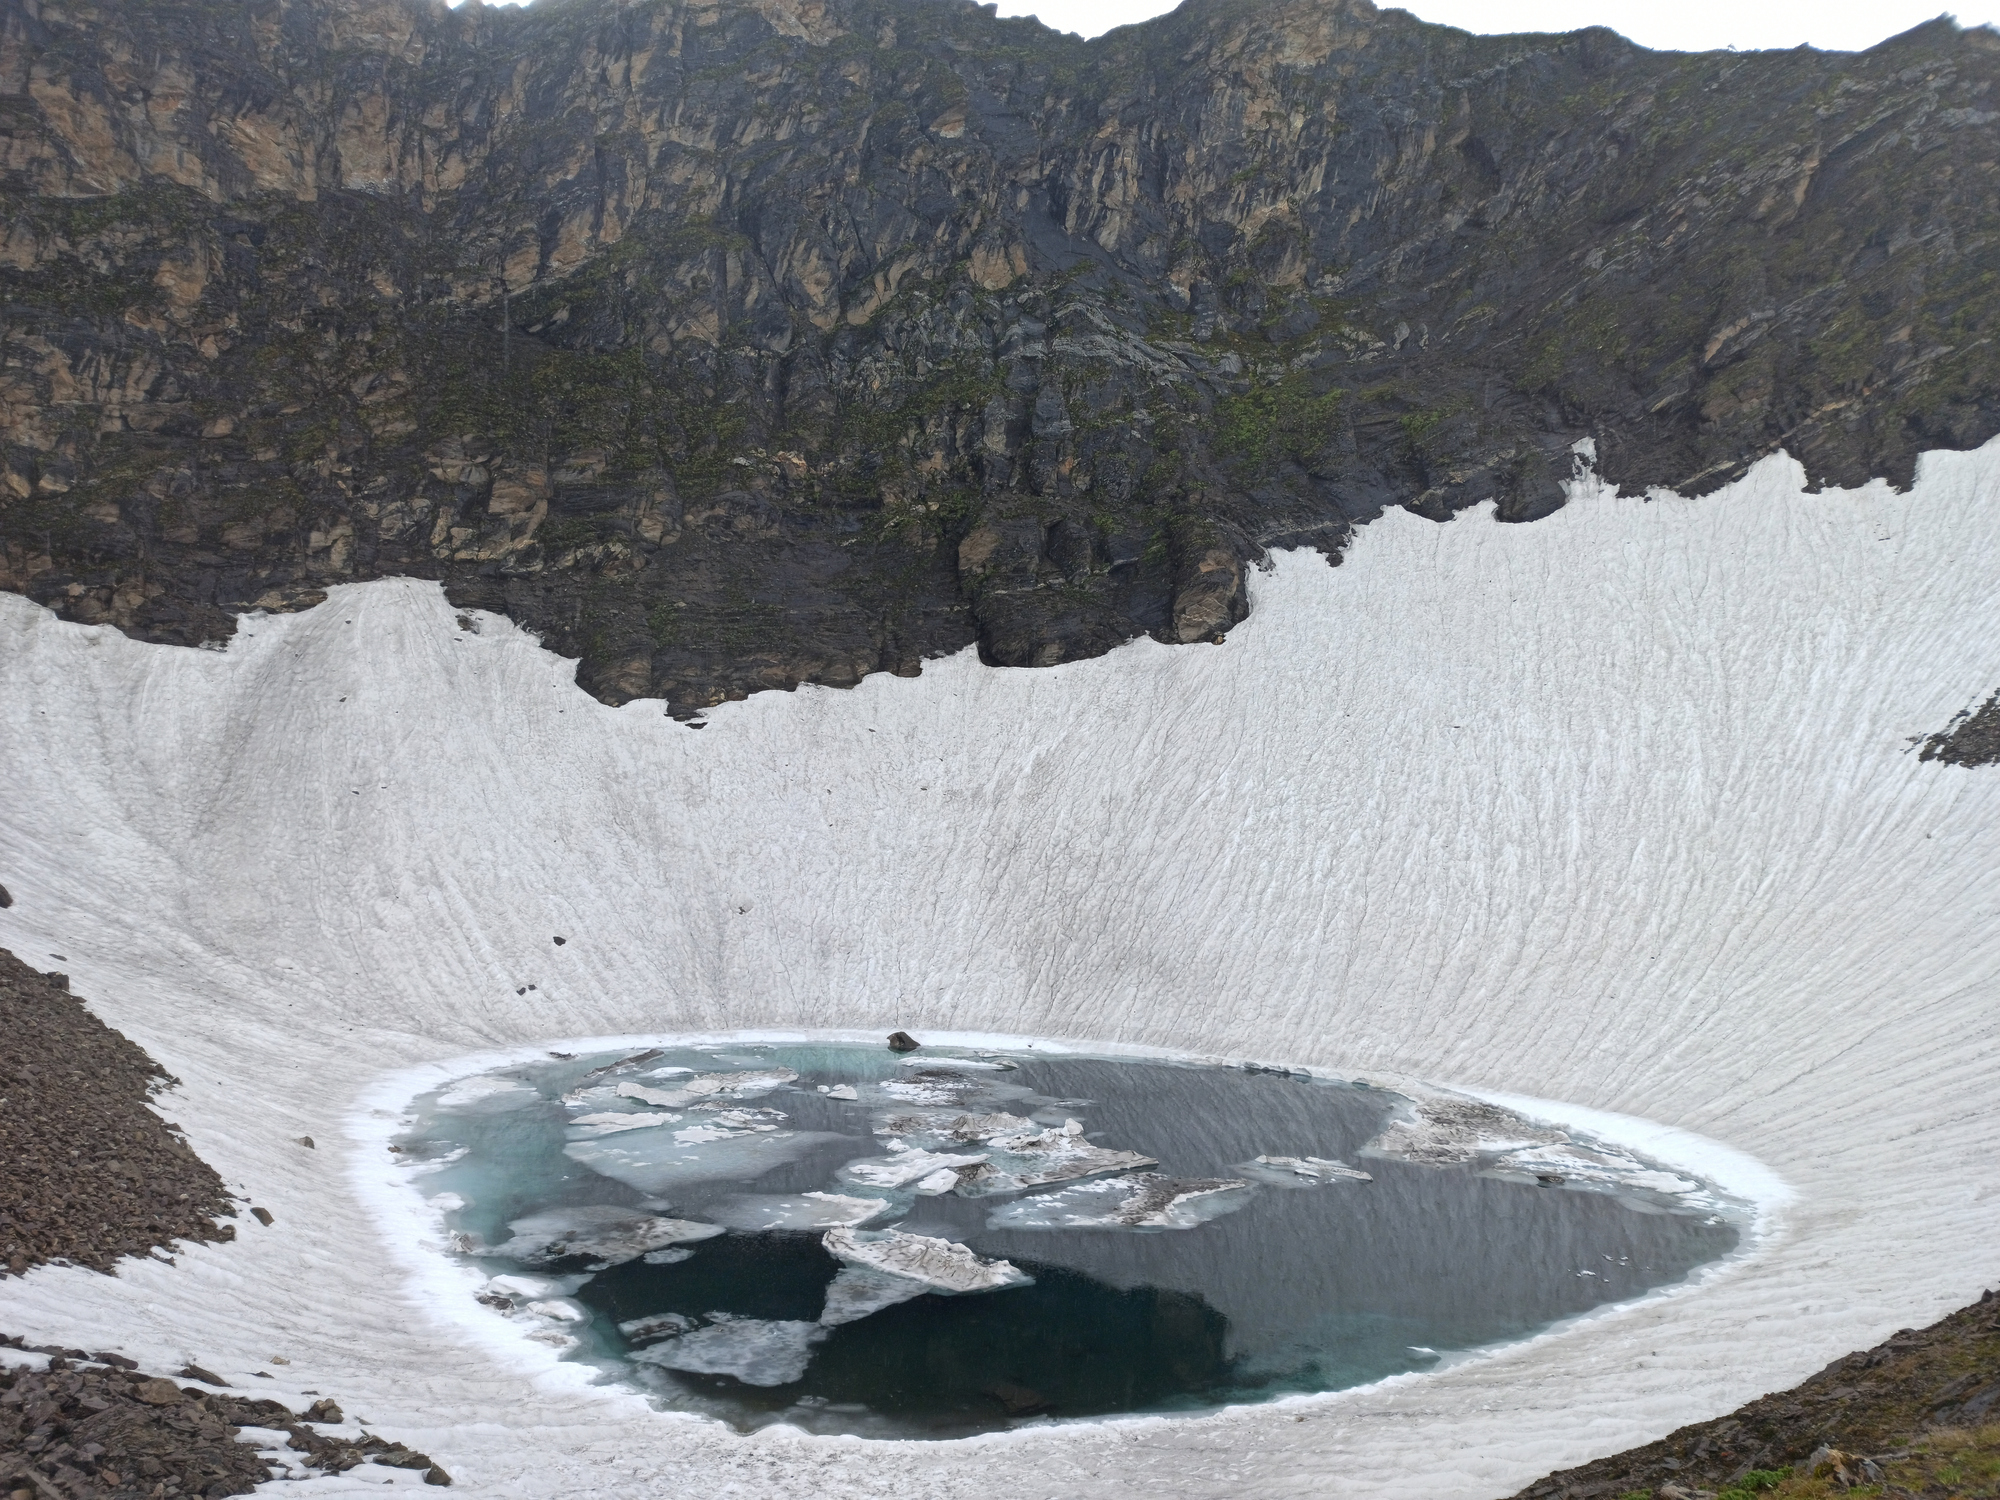 Panoramic view of Roopkund Lake(a glacial lake) in himalayas region of uttarakhand, india.